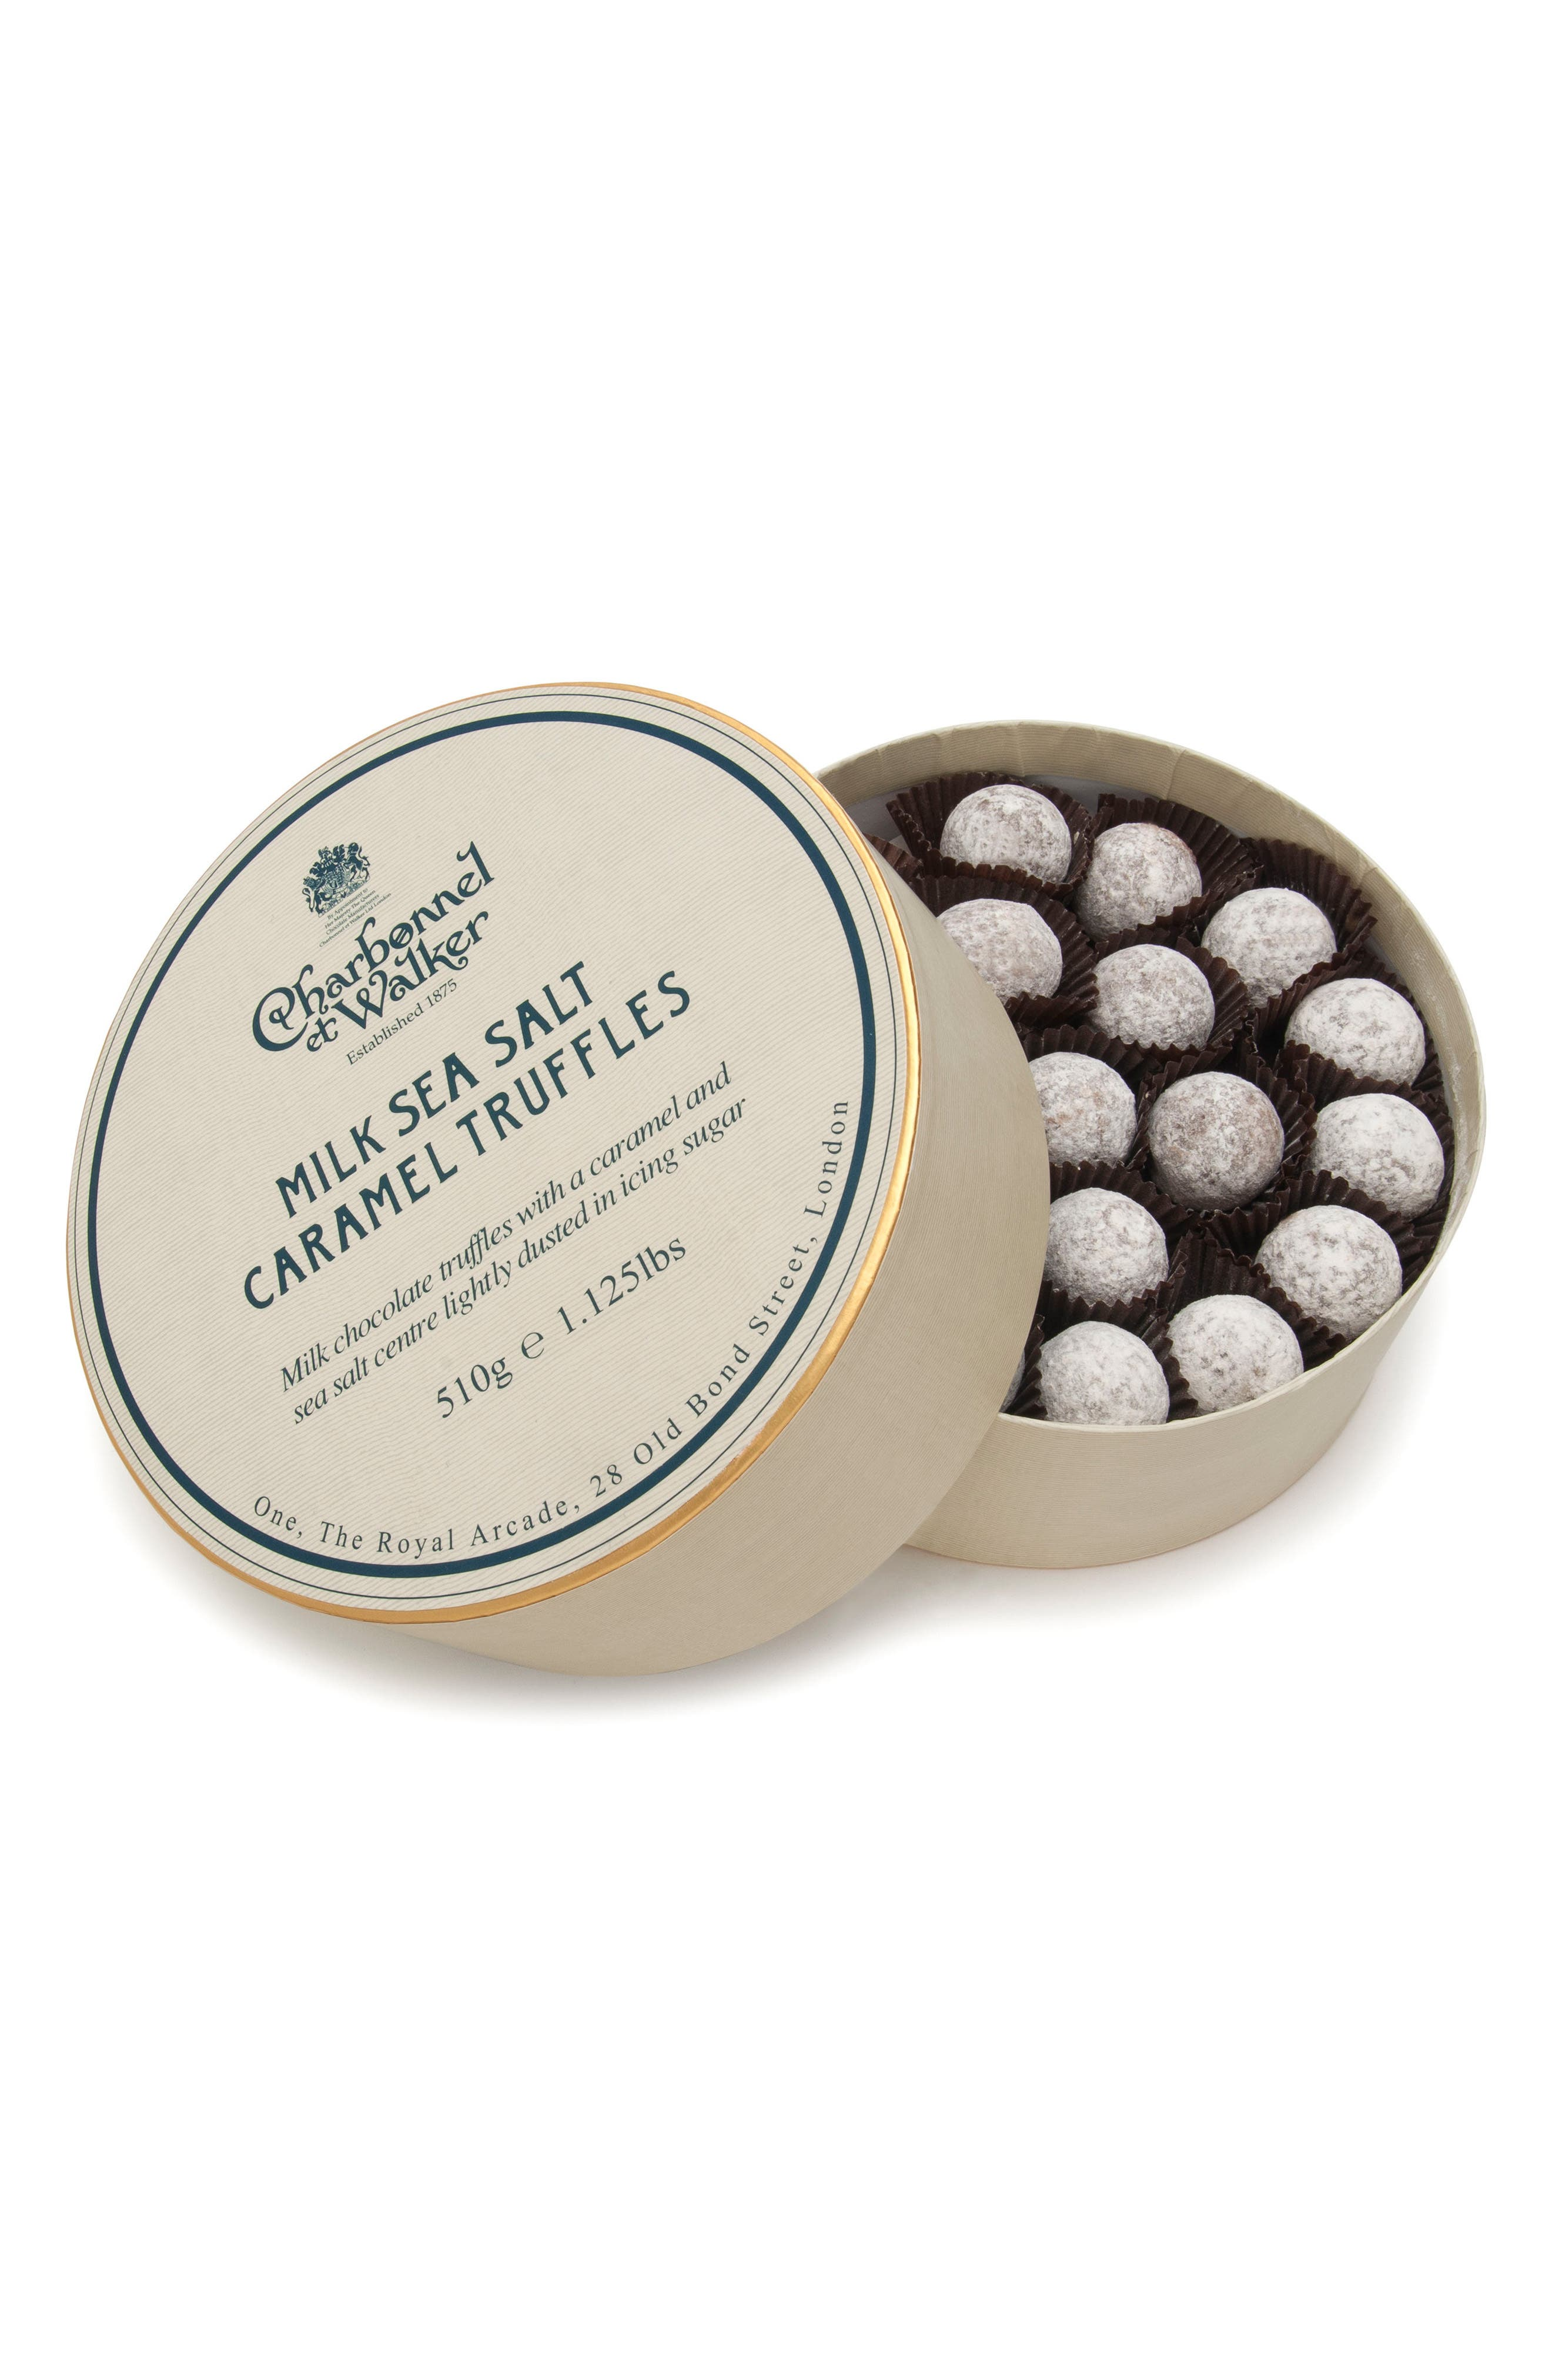 Alternate Image 1 Selected - Charbonnel et Walker Sea Salt Caramel Milk Chocolate Truffles in Double Layer Gift Box